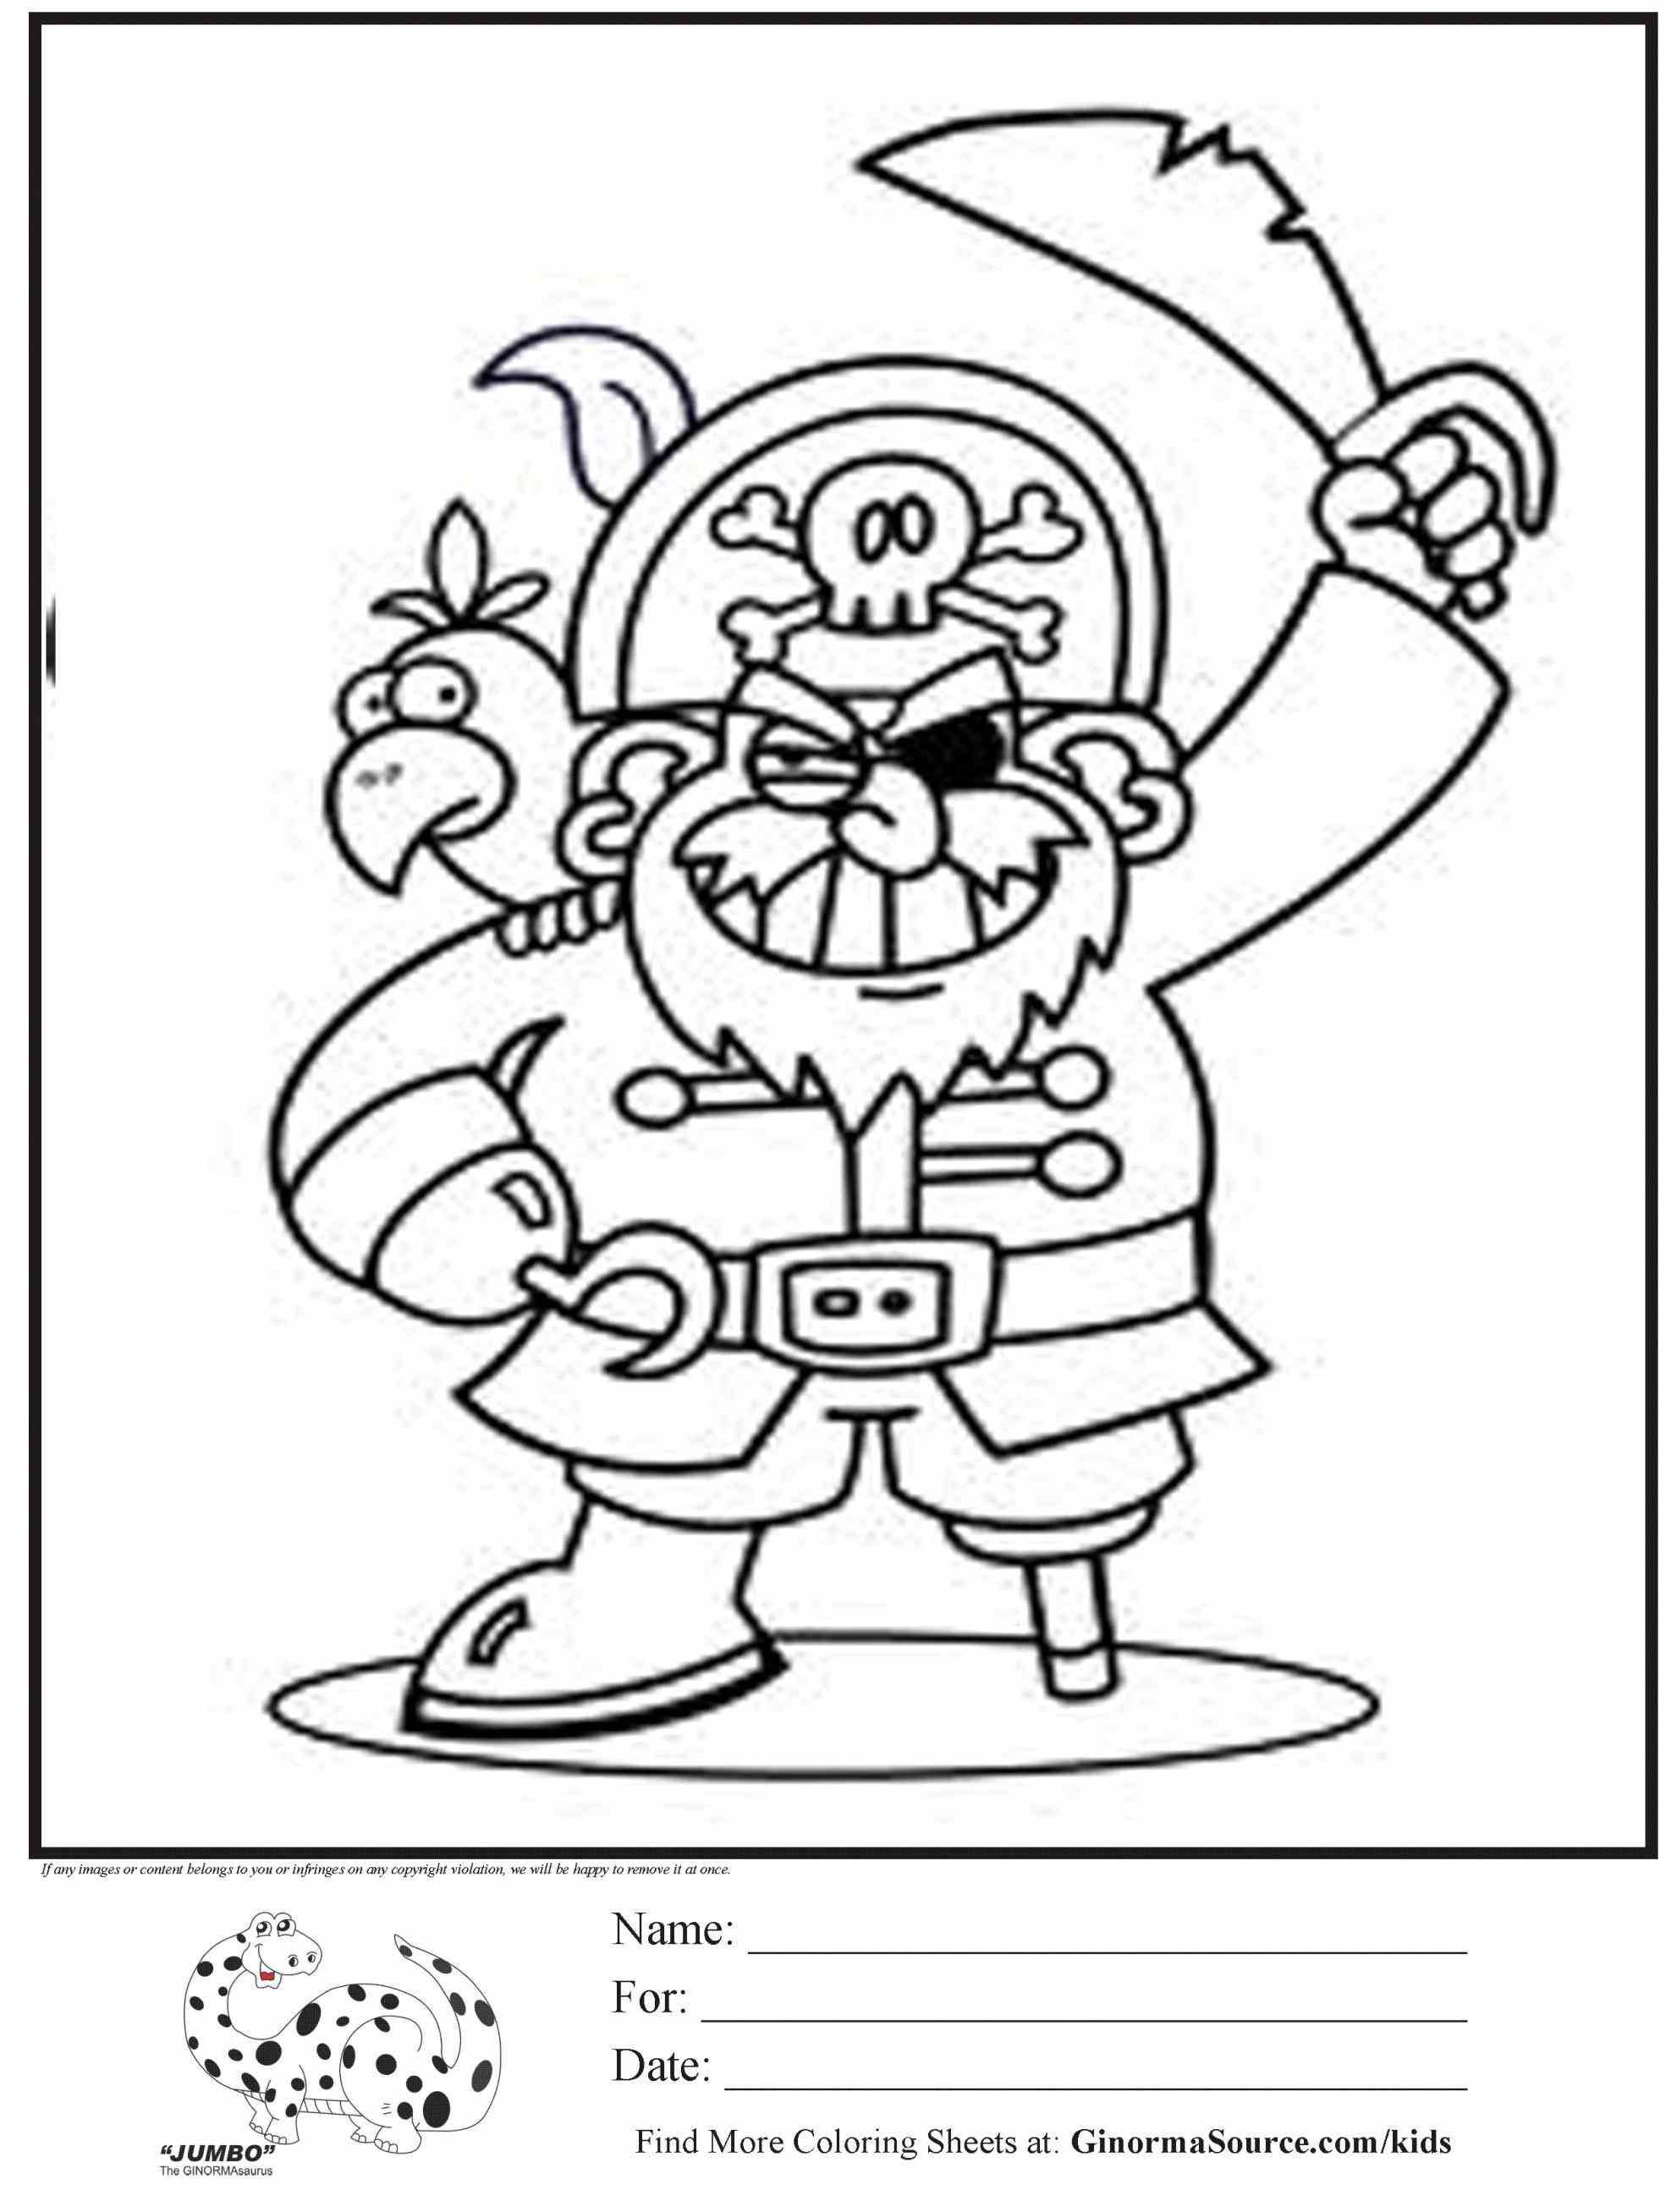 pirate coloring pages for preschool pirate coloring pages pirate coloring pages pirate pages pirate coloring preschool for